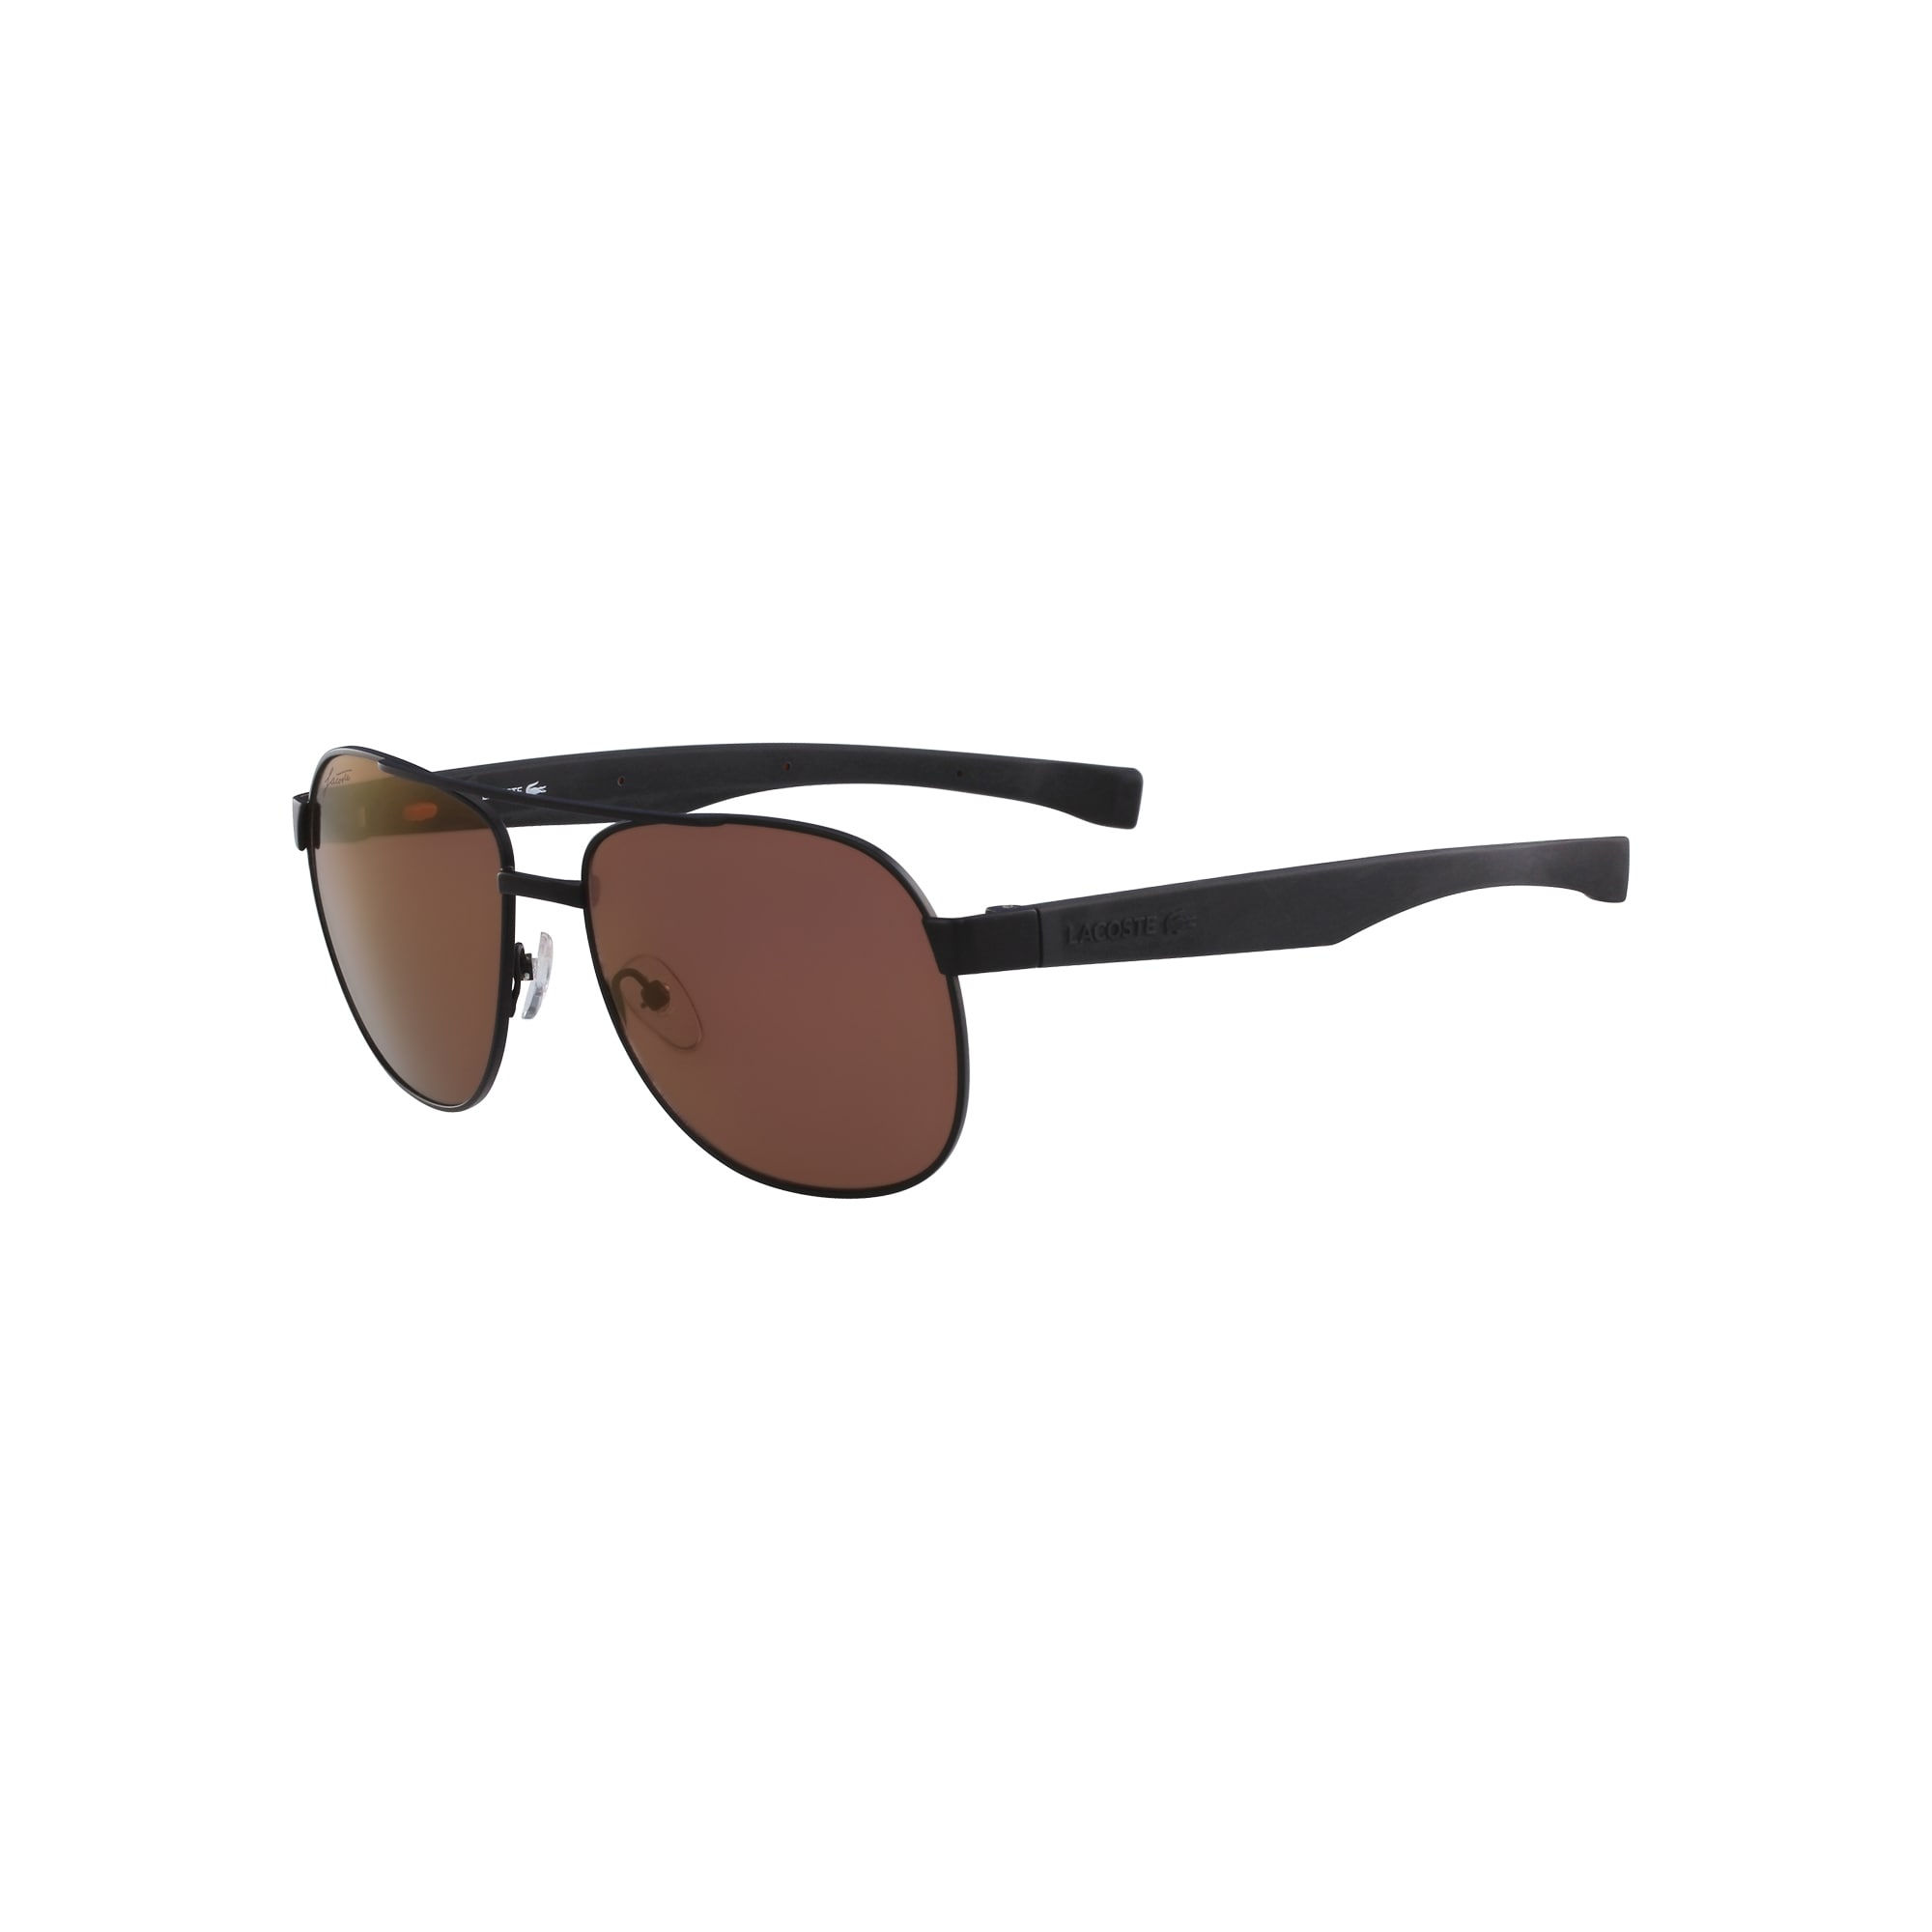 Men's Magnetic Metal Aviator Sunglasses